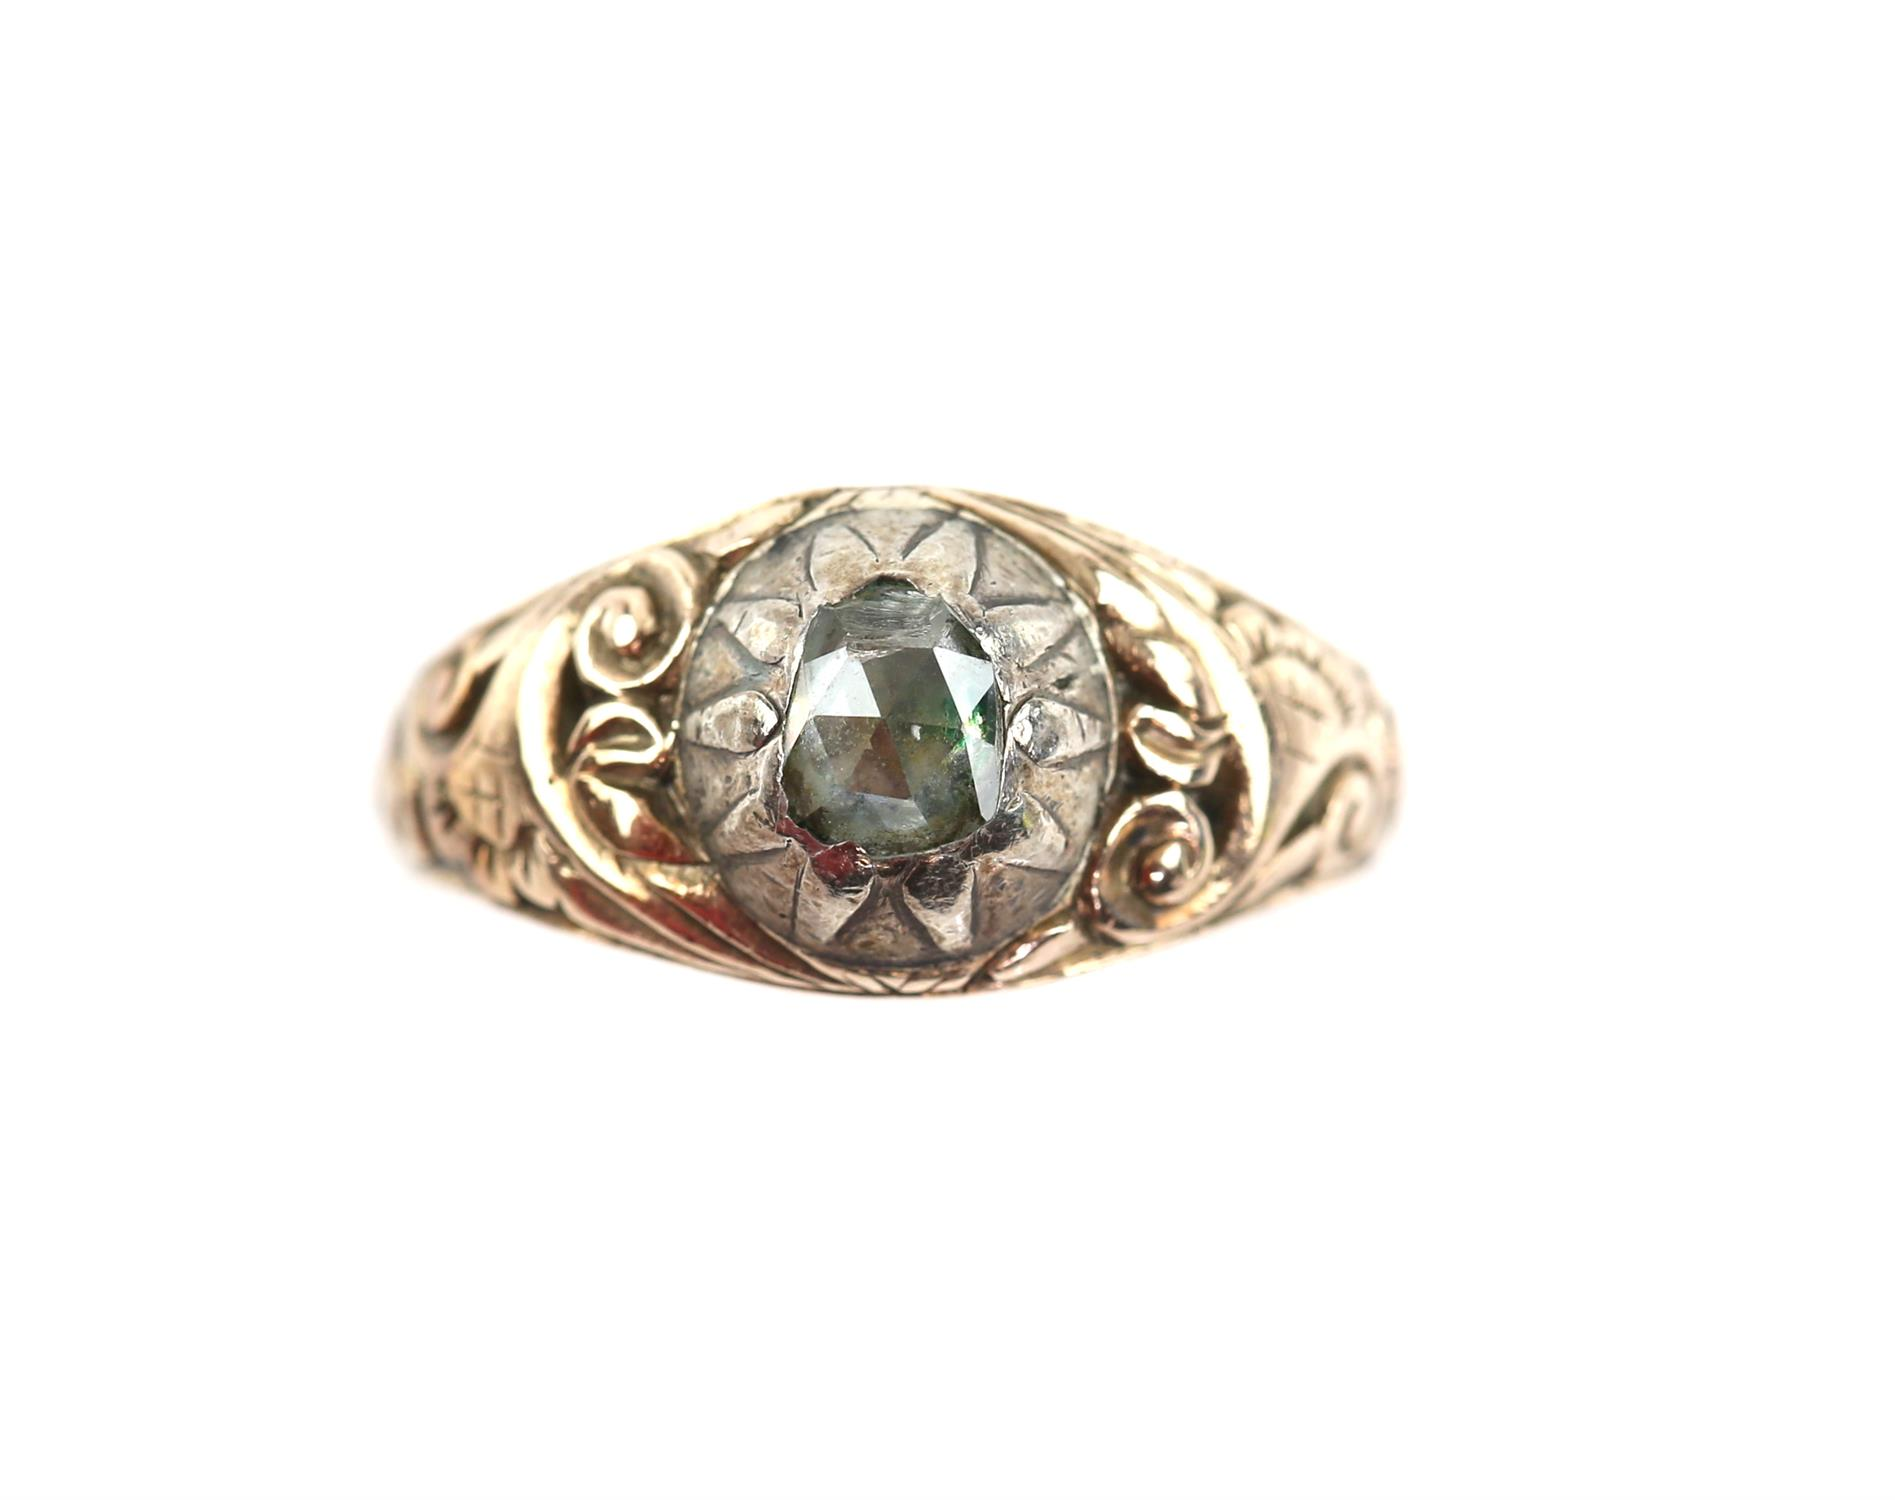 Antique ring, set with a foil backed rose cut diamond, diamond measuring 5.1 x 4.